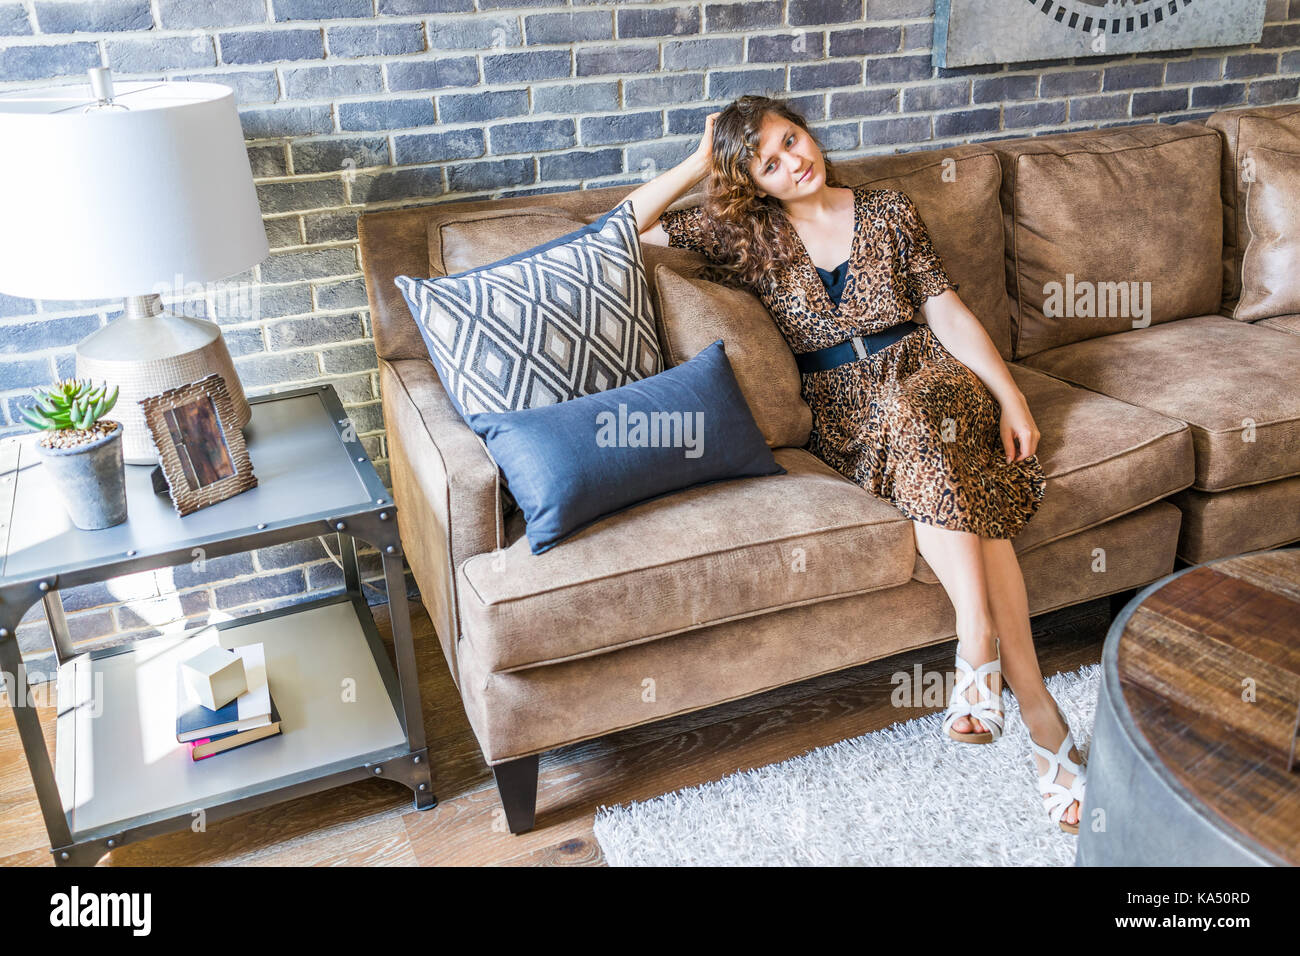 Remarkable Brown Leather Sofa Woman Happy Stock Photos Brown Leather Dailytribune Chair Design For Home Dailytribuneorg